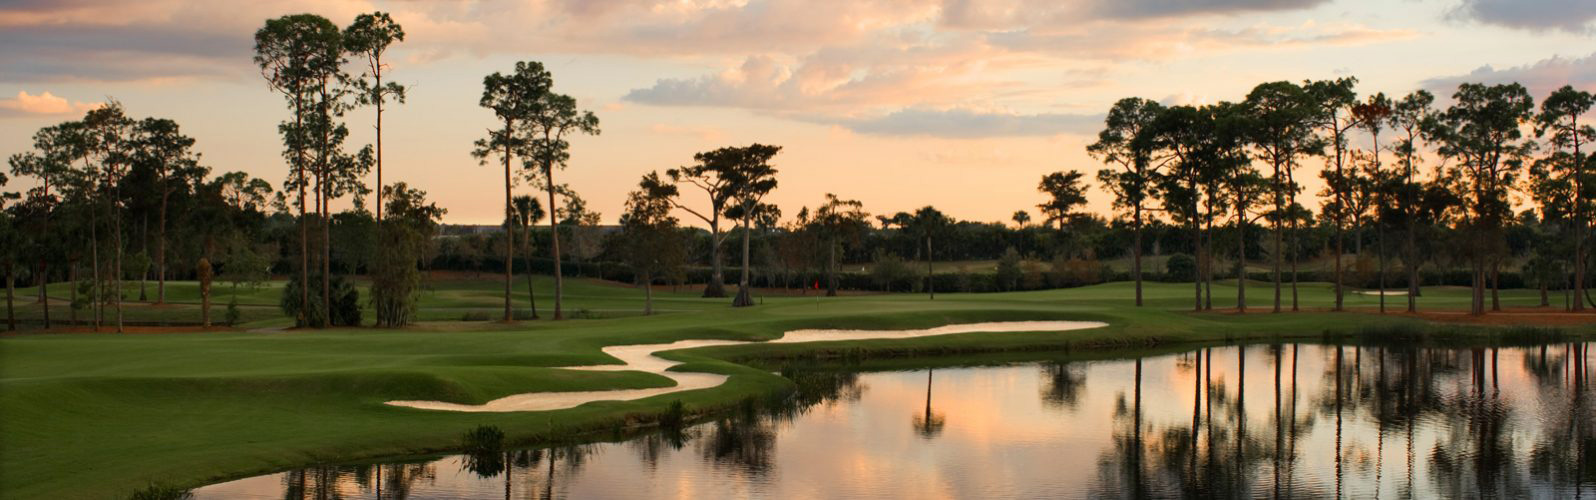 Naples Grande Golf Club - Naples Golf Holes